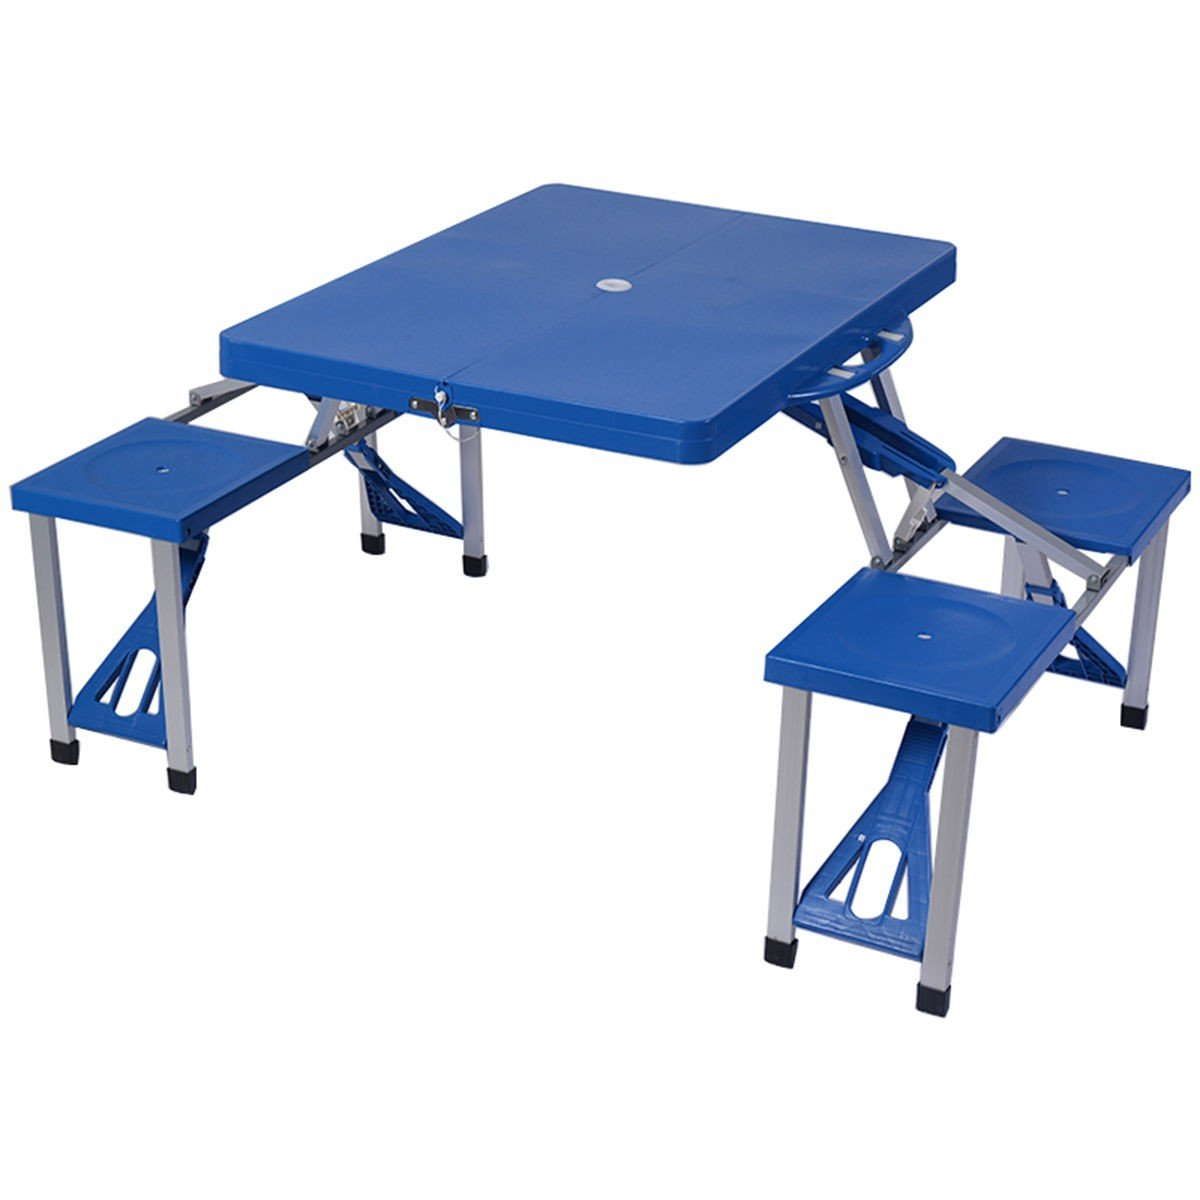 BESTChoiceForYou Table Outdoor Camping Folding Picnic Portable Desk Aluminum Lightweight Square Chair Set 4 W Garden Adjustable Dining Side